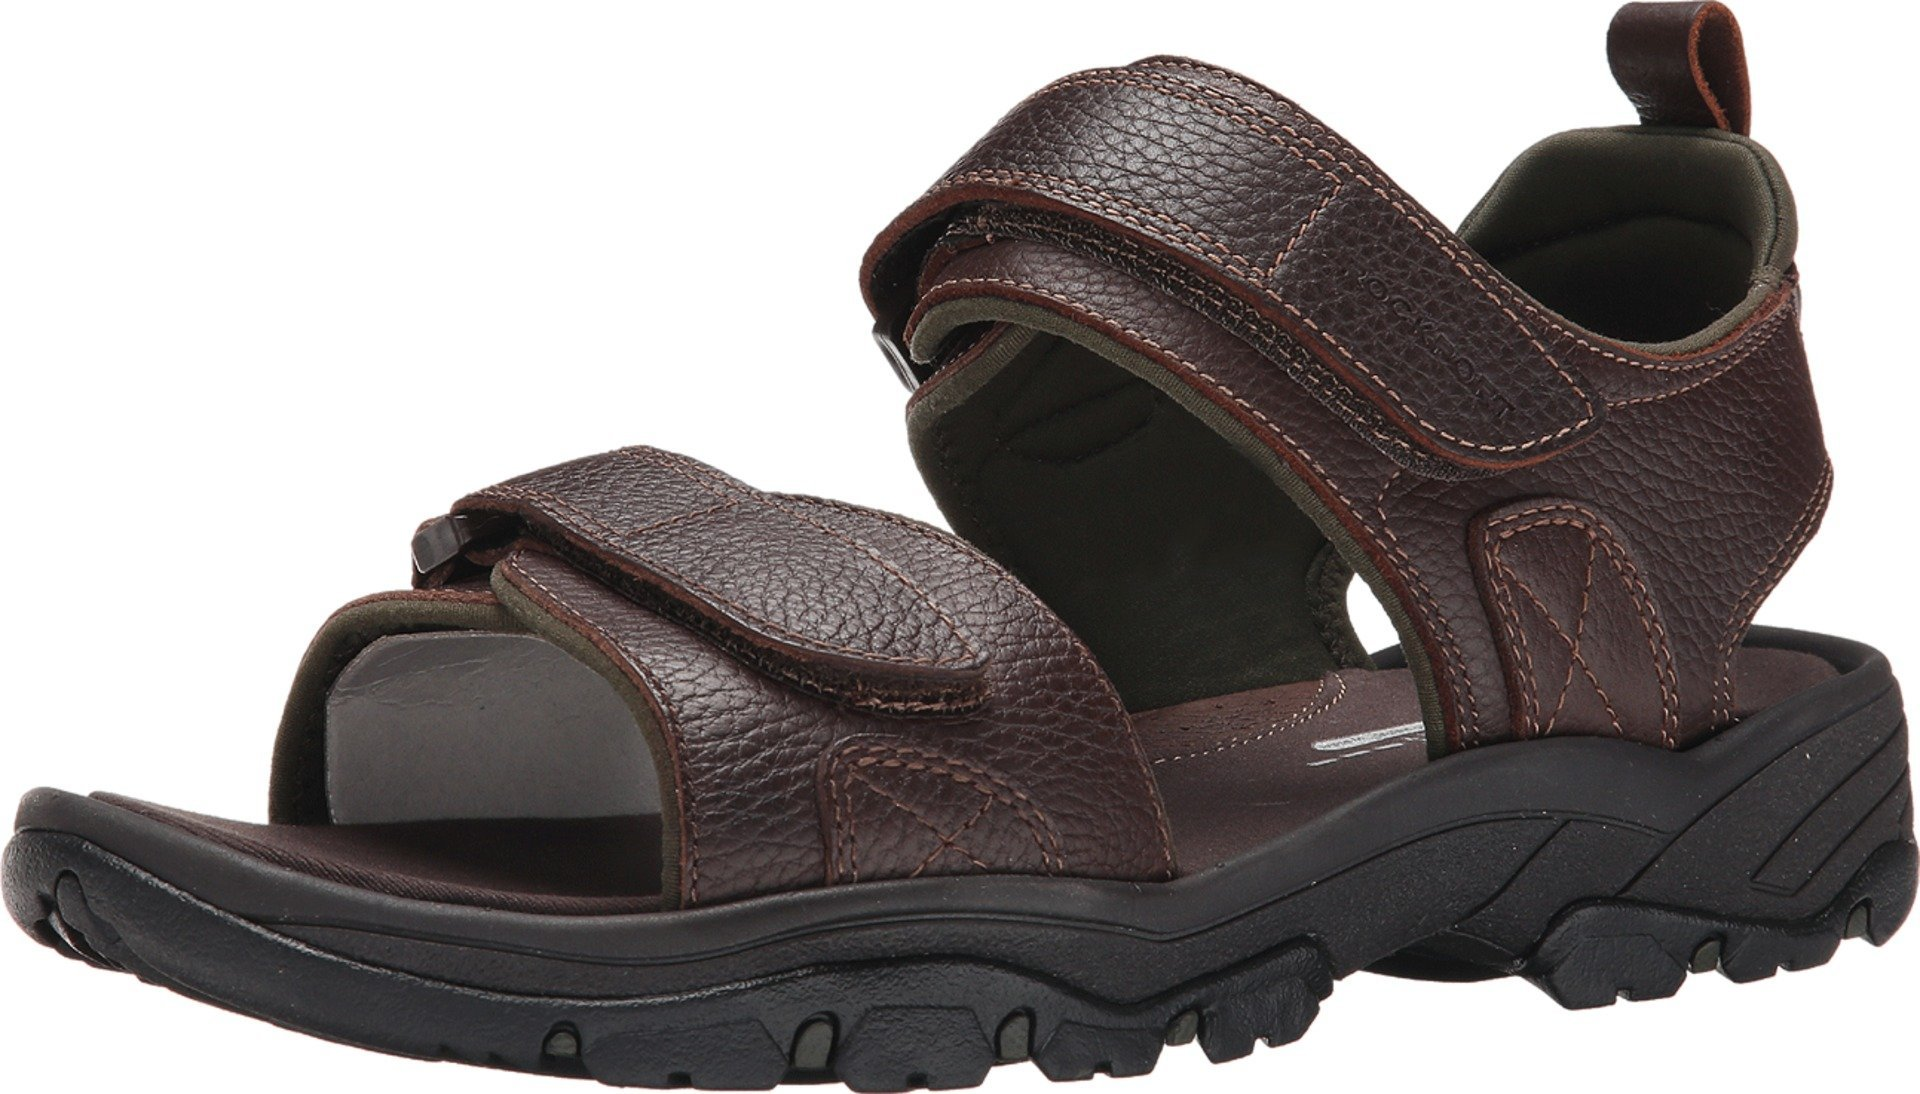 36eca63de8c8b4 Best Rated in Men s Sandals   Helpful Customer Reviews - Amazon.com